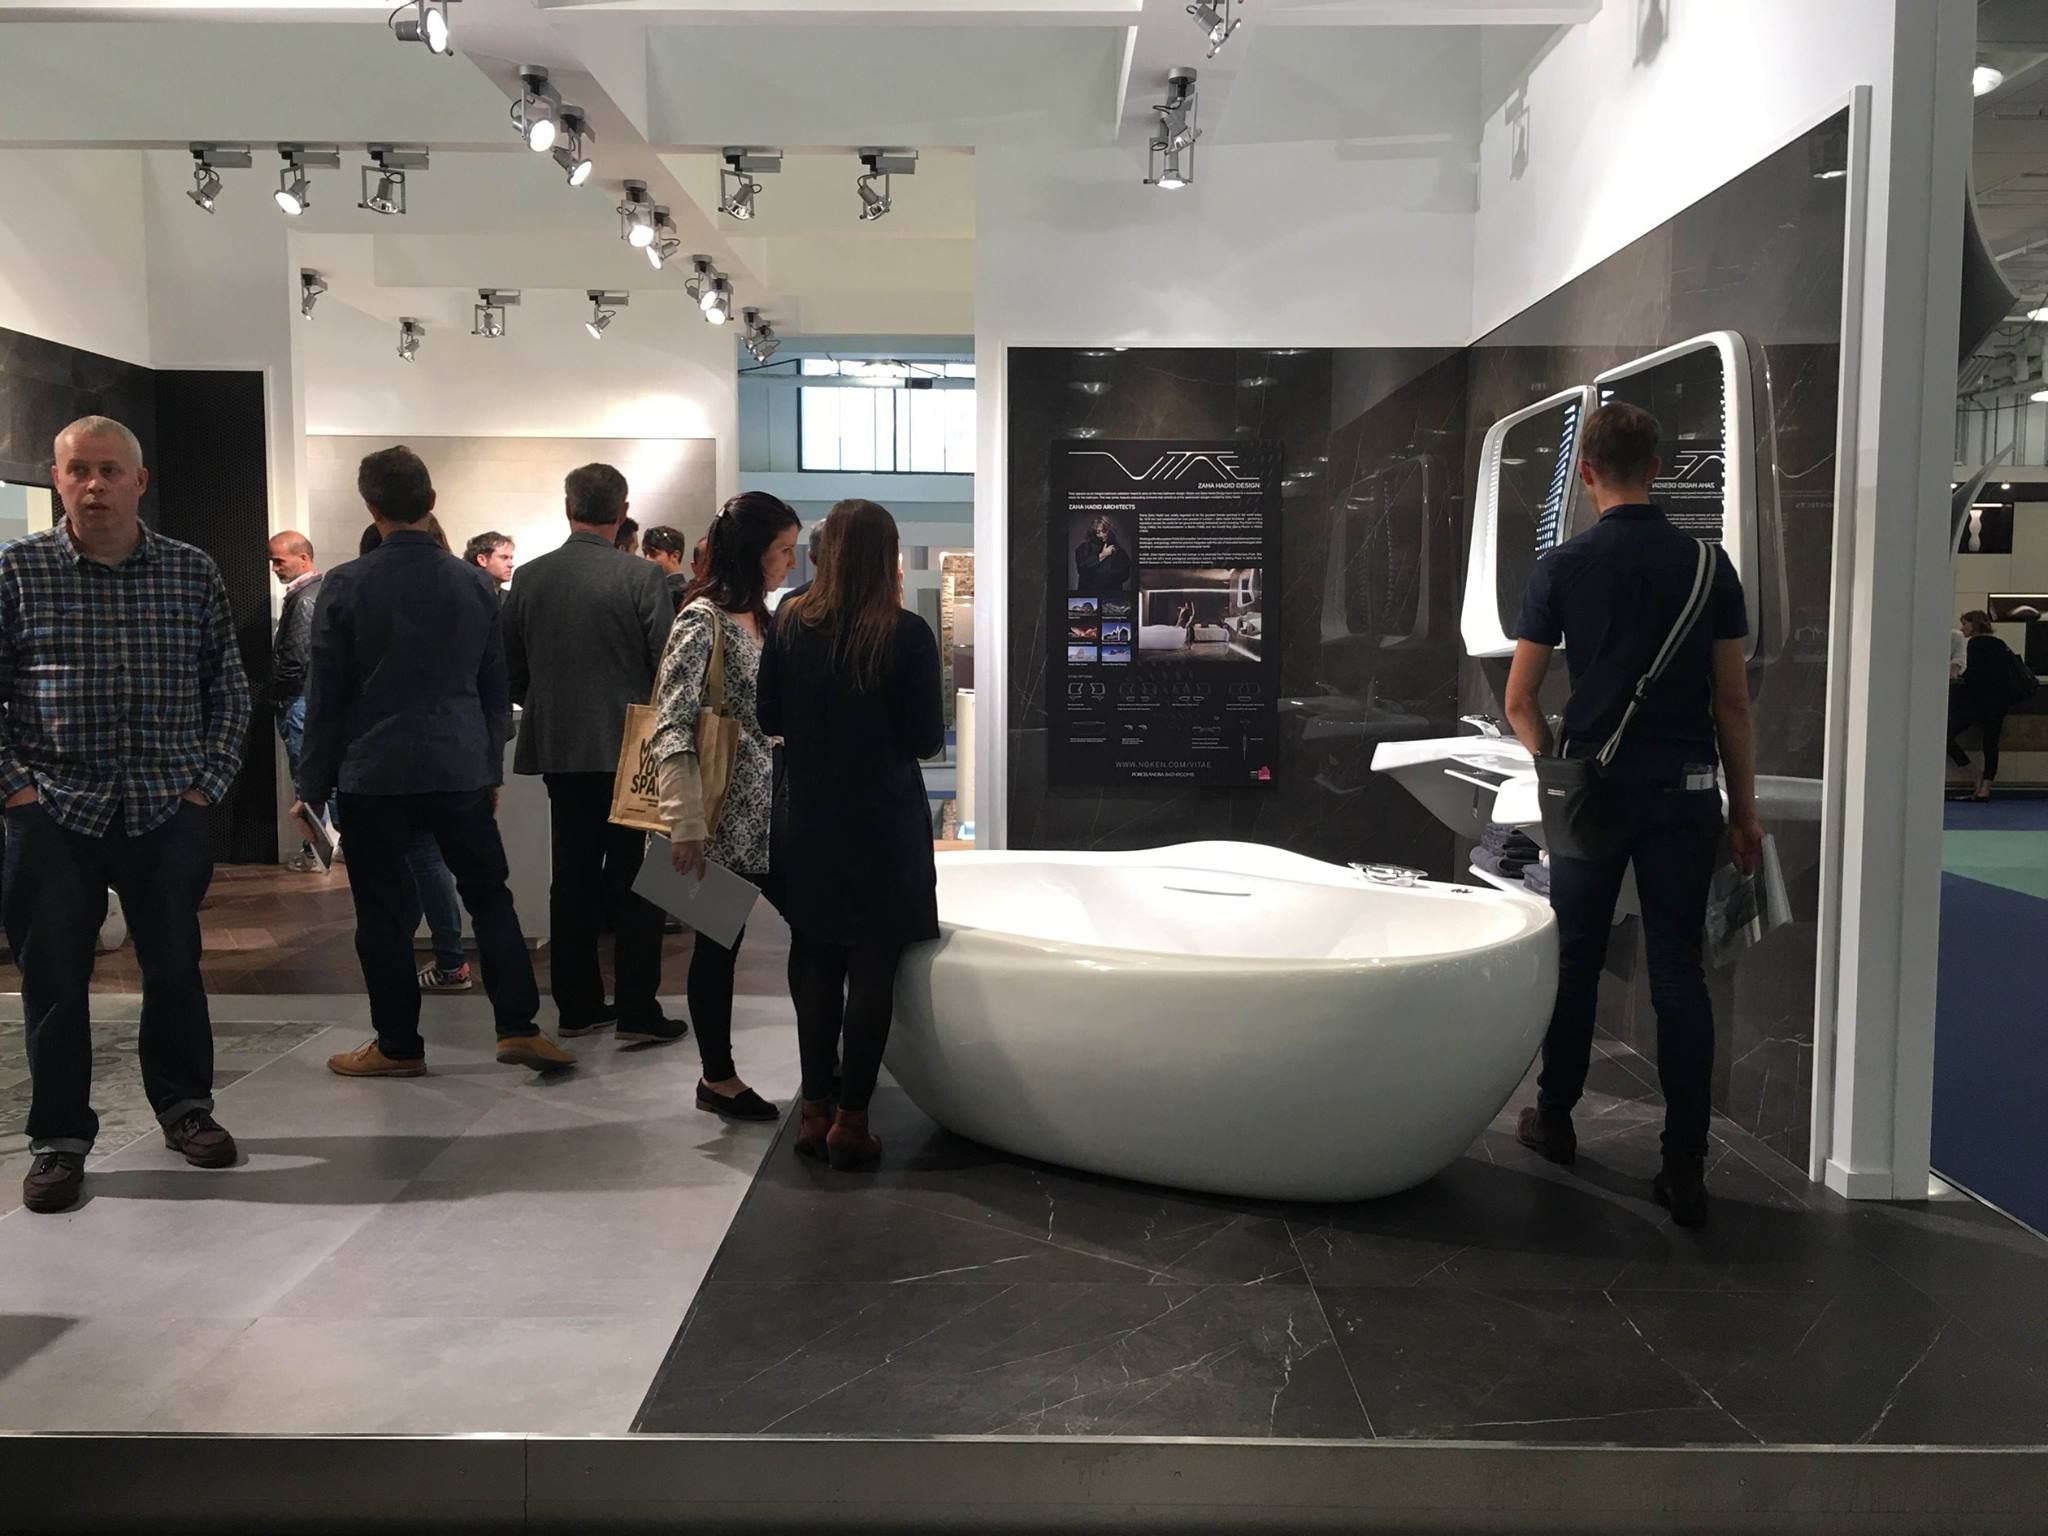 100% Design - #London. @porcelanosa da a conocer la nueva materia cerámica de gran formato XLIGHT Premium #URBATEK en el baño #Vitae #Zaha #Noken - #Porcelanosa #100design #bathroom #baño #marble #design #architecture #furniture